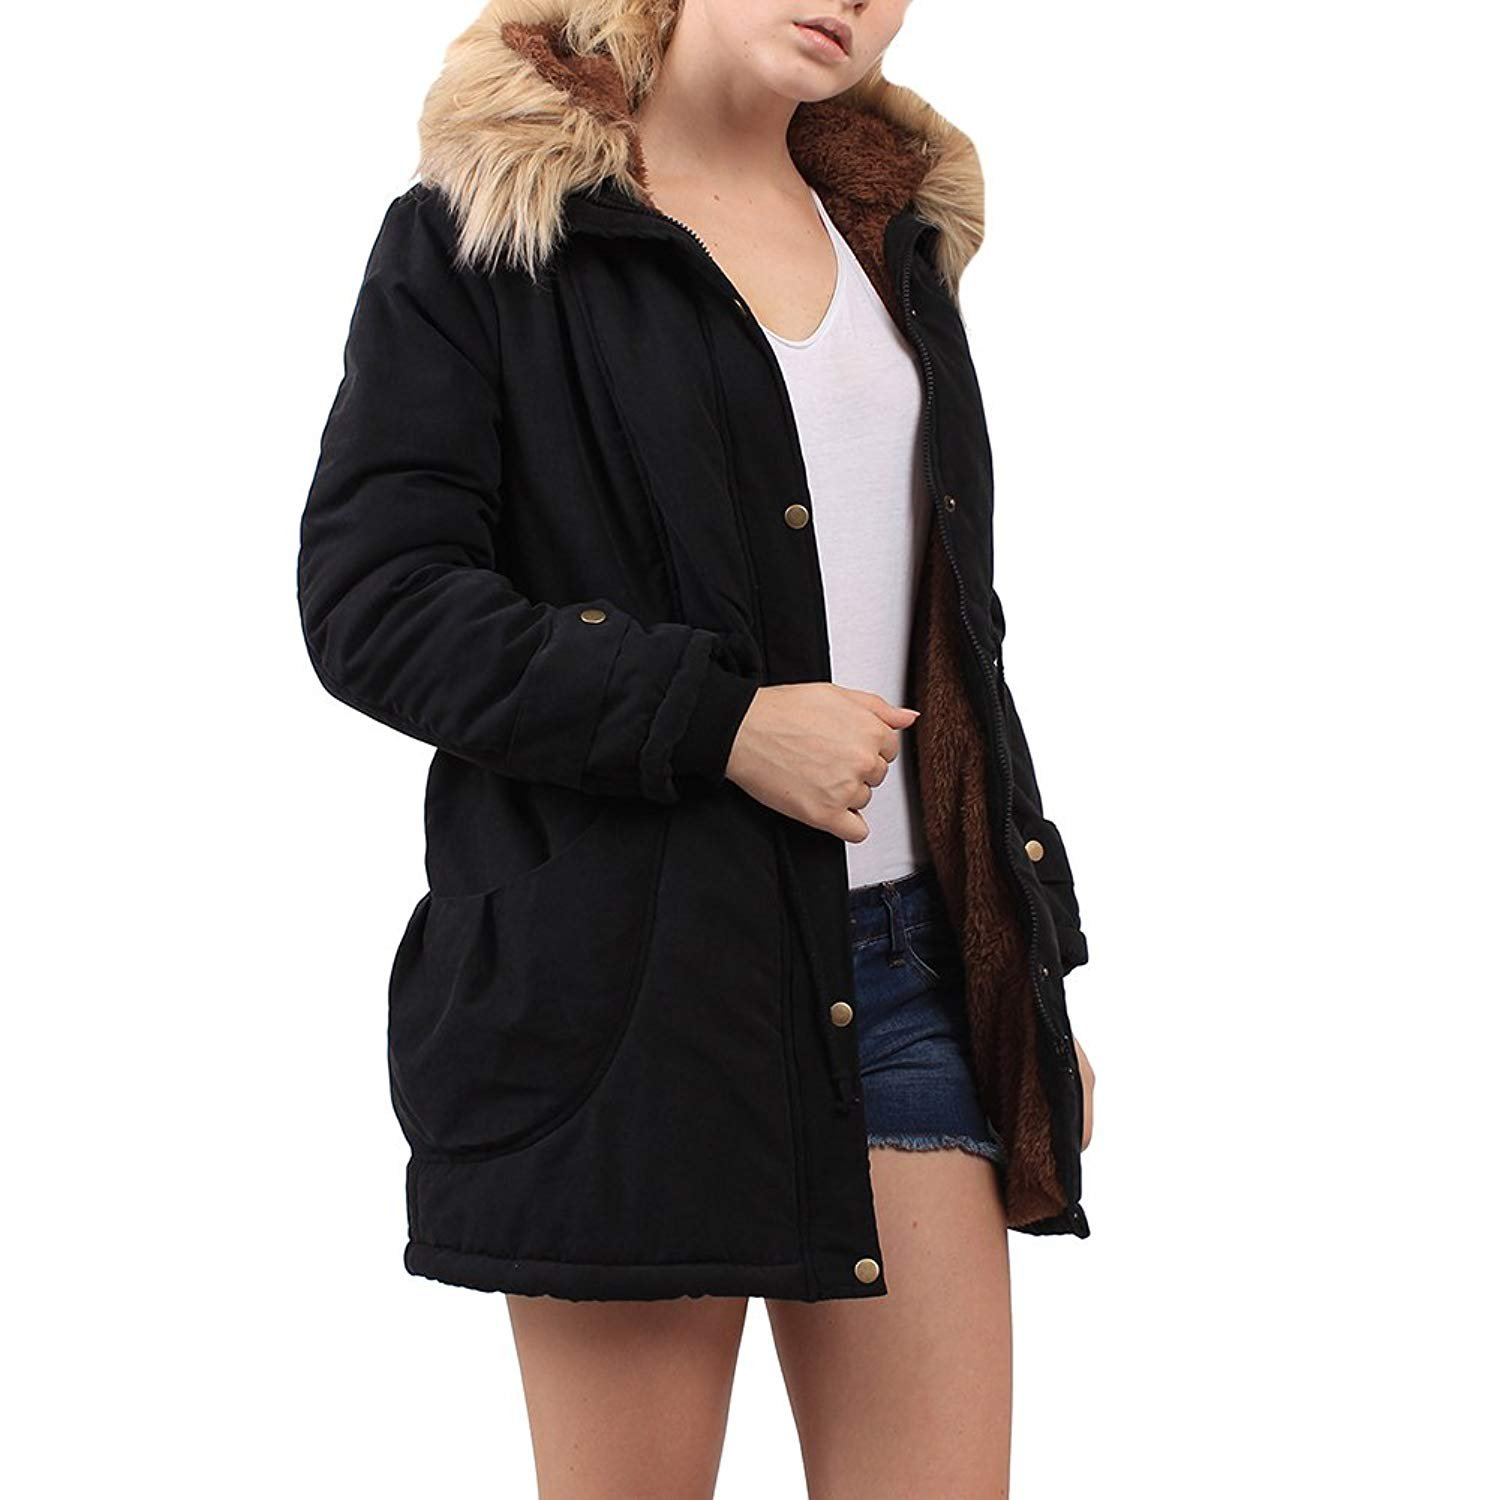 04153be6d64a Rela Bota Womens Hooded Warm Winter Faux Fur Lined Coats Parkas Wool Jacket  Outwear larger image